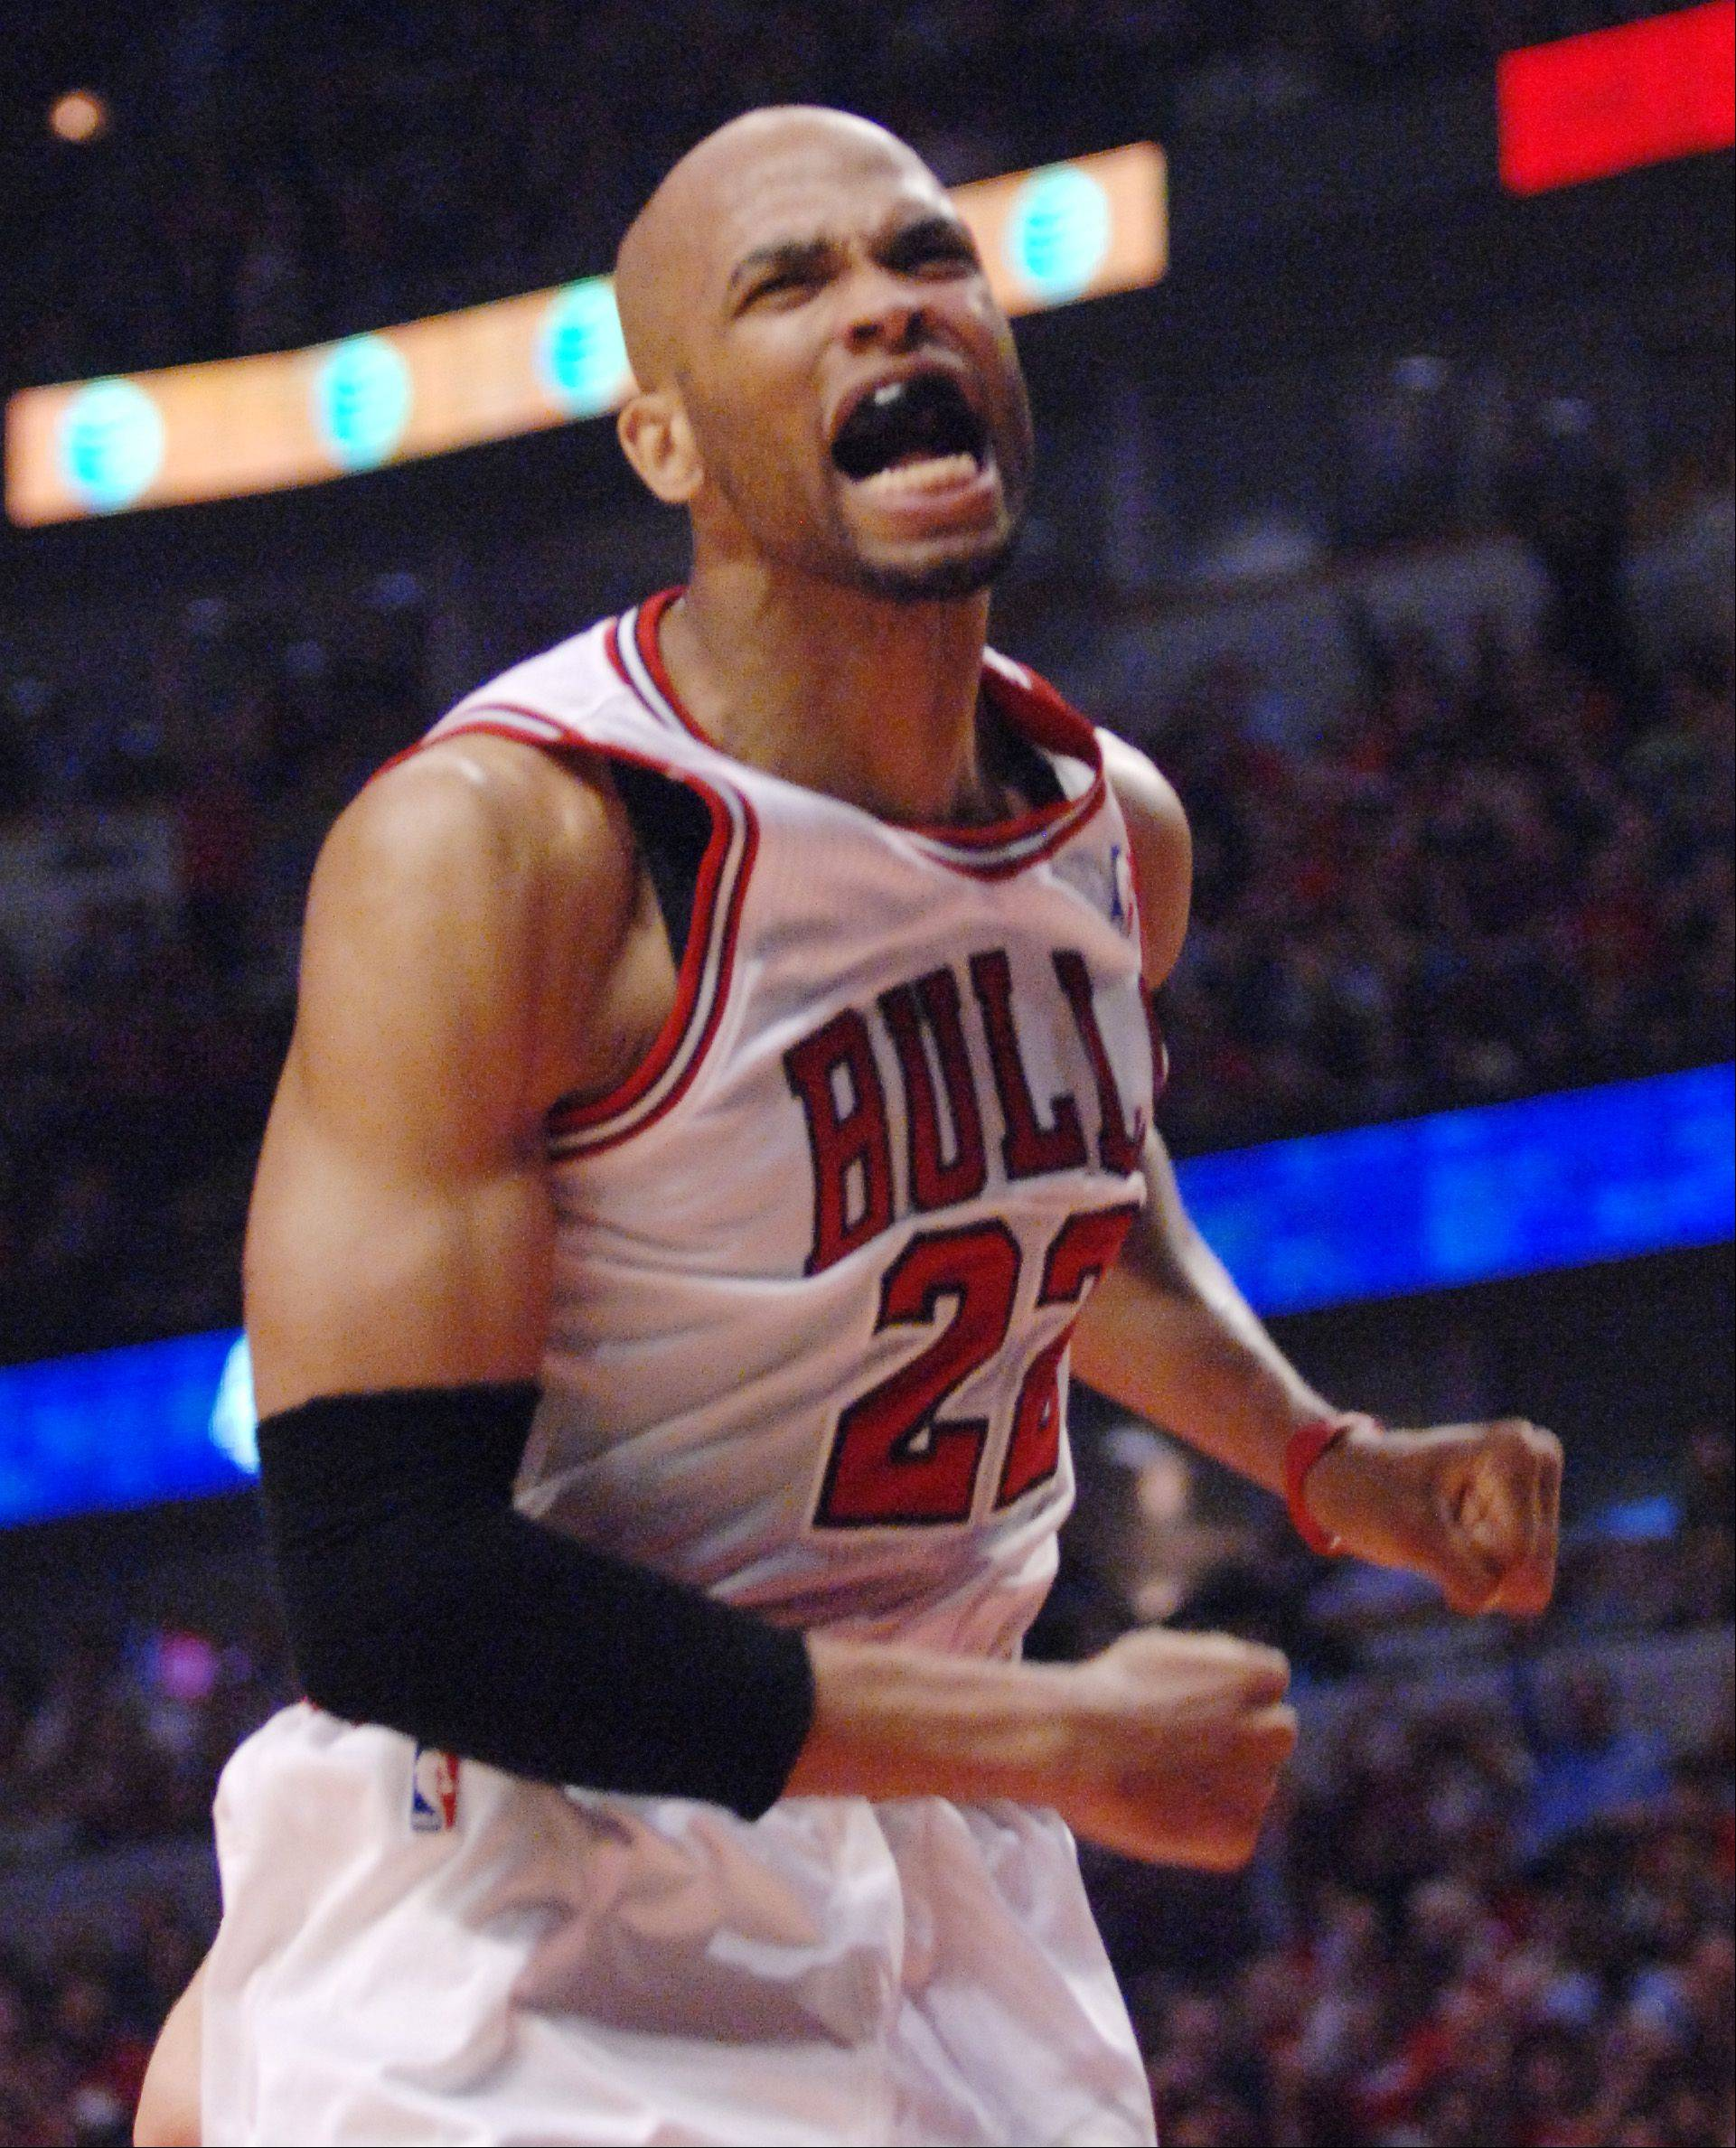 Forward Taj Gibson and the Bulls face a deadline Wednesday to agree on a contract extension.